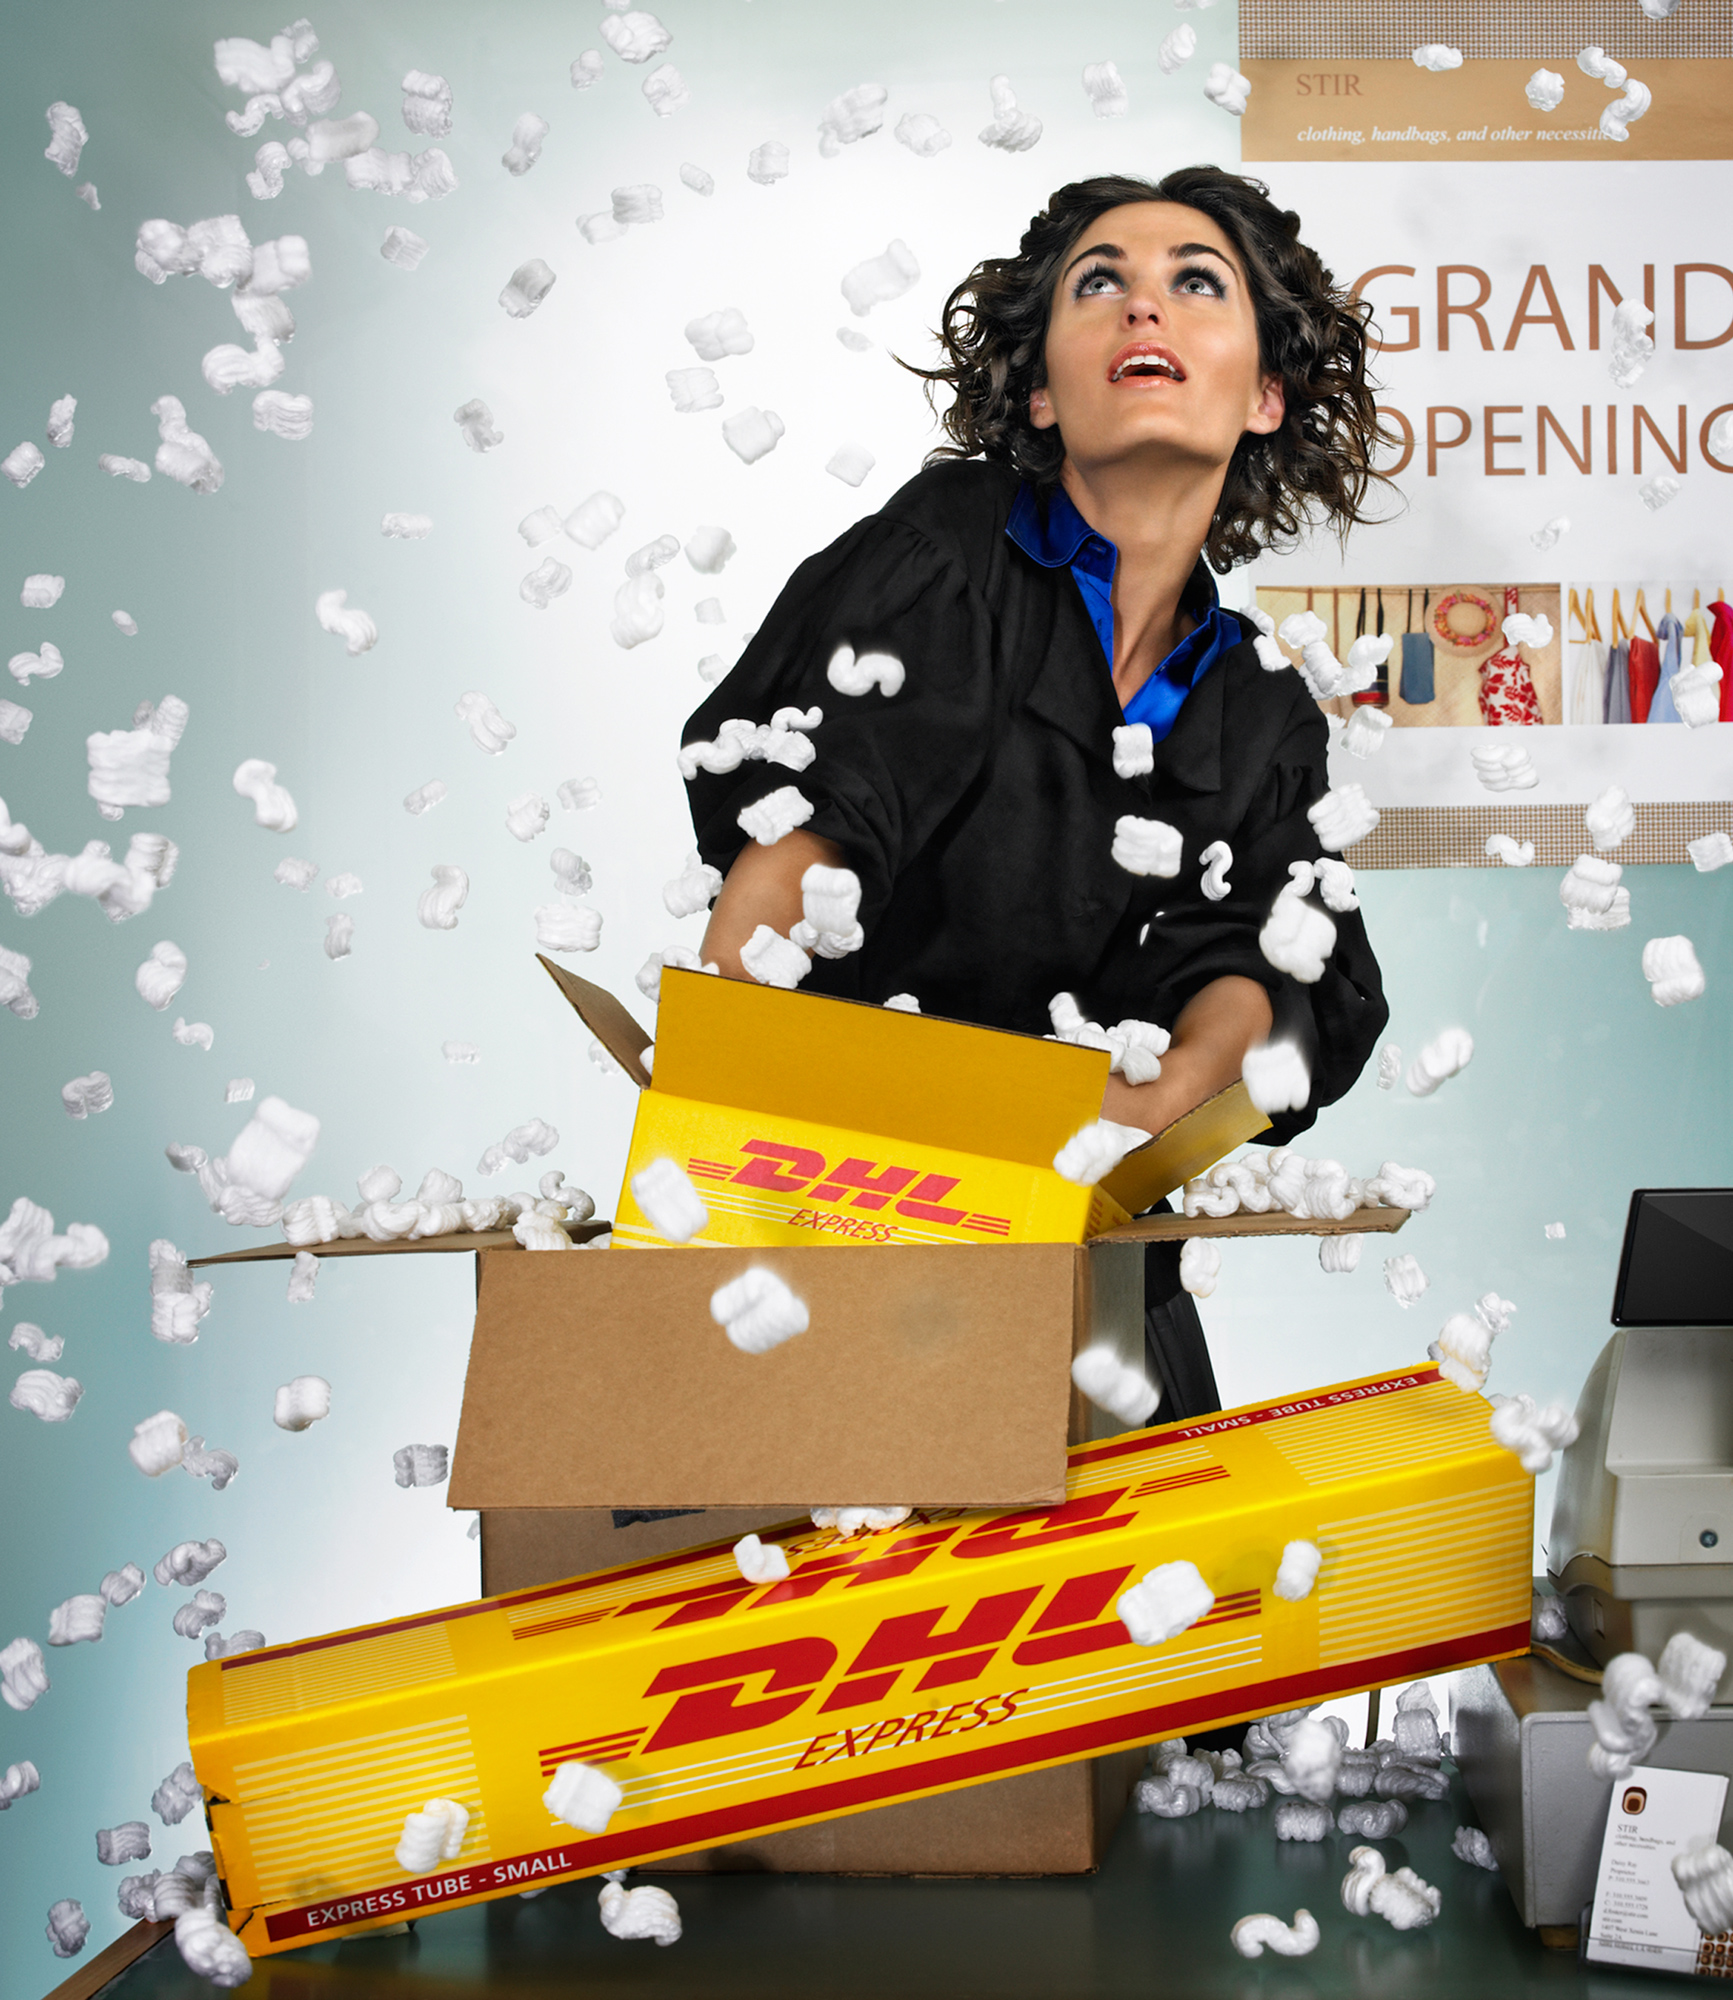 OFFICE MAX - DHL